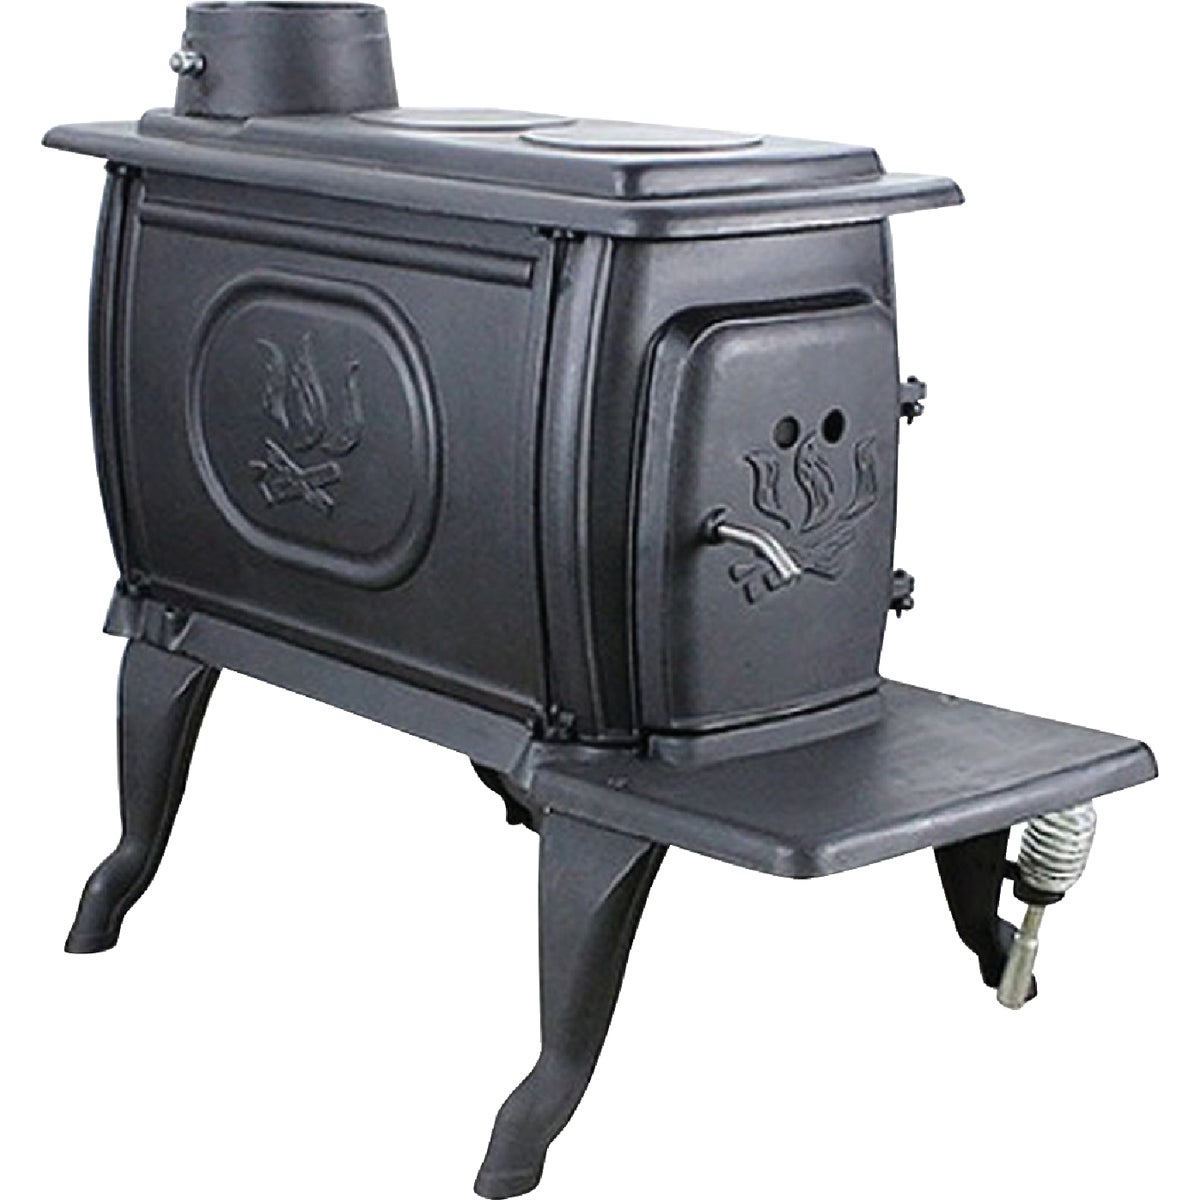 CAST IRON BOXWOOD STOVE